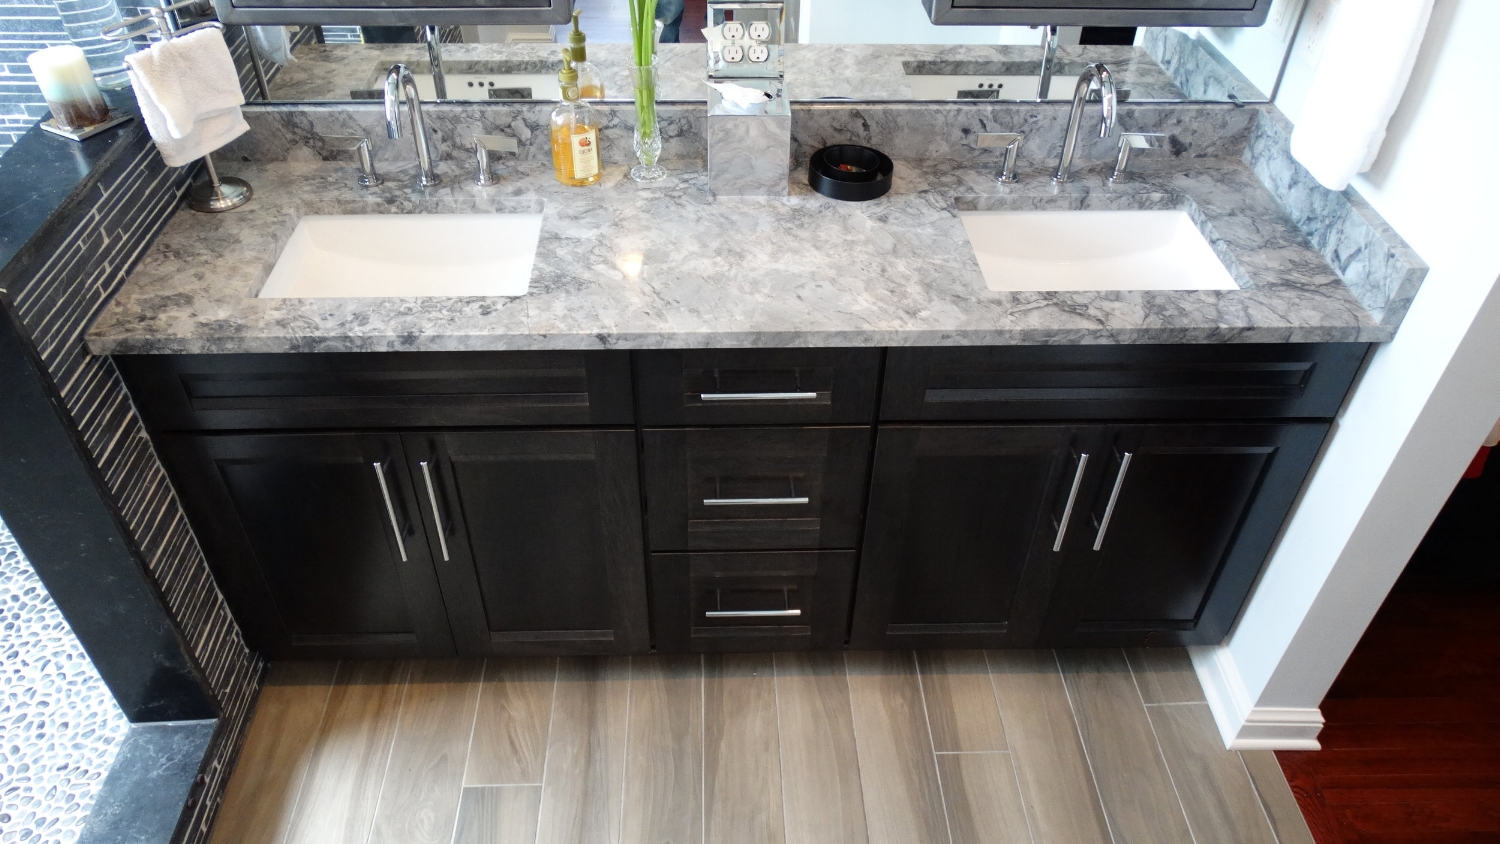 rocky-river-bathroom-renovation-heated-tile-floors-black-vanity-quartz-countertop.JPG